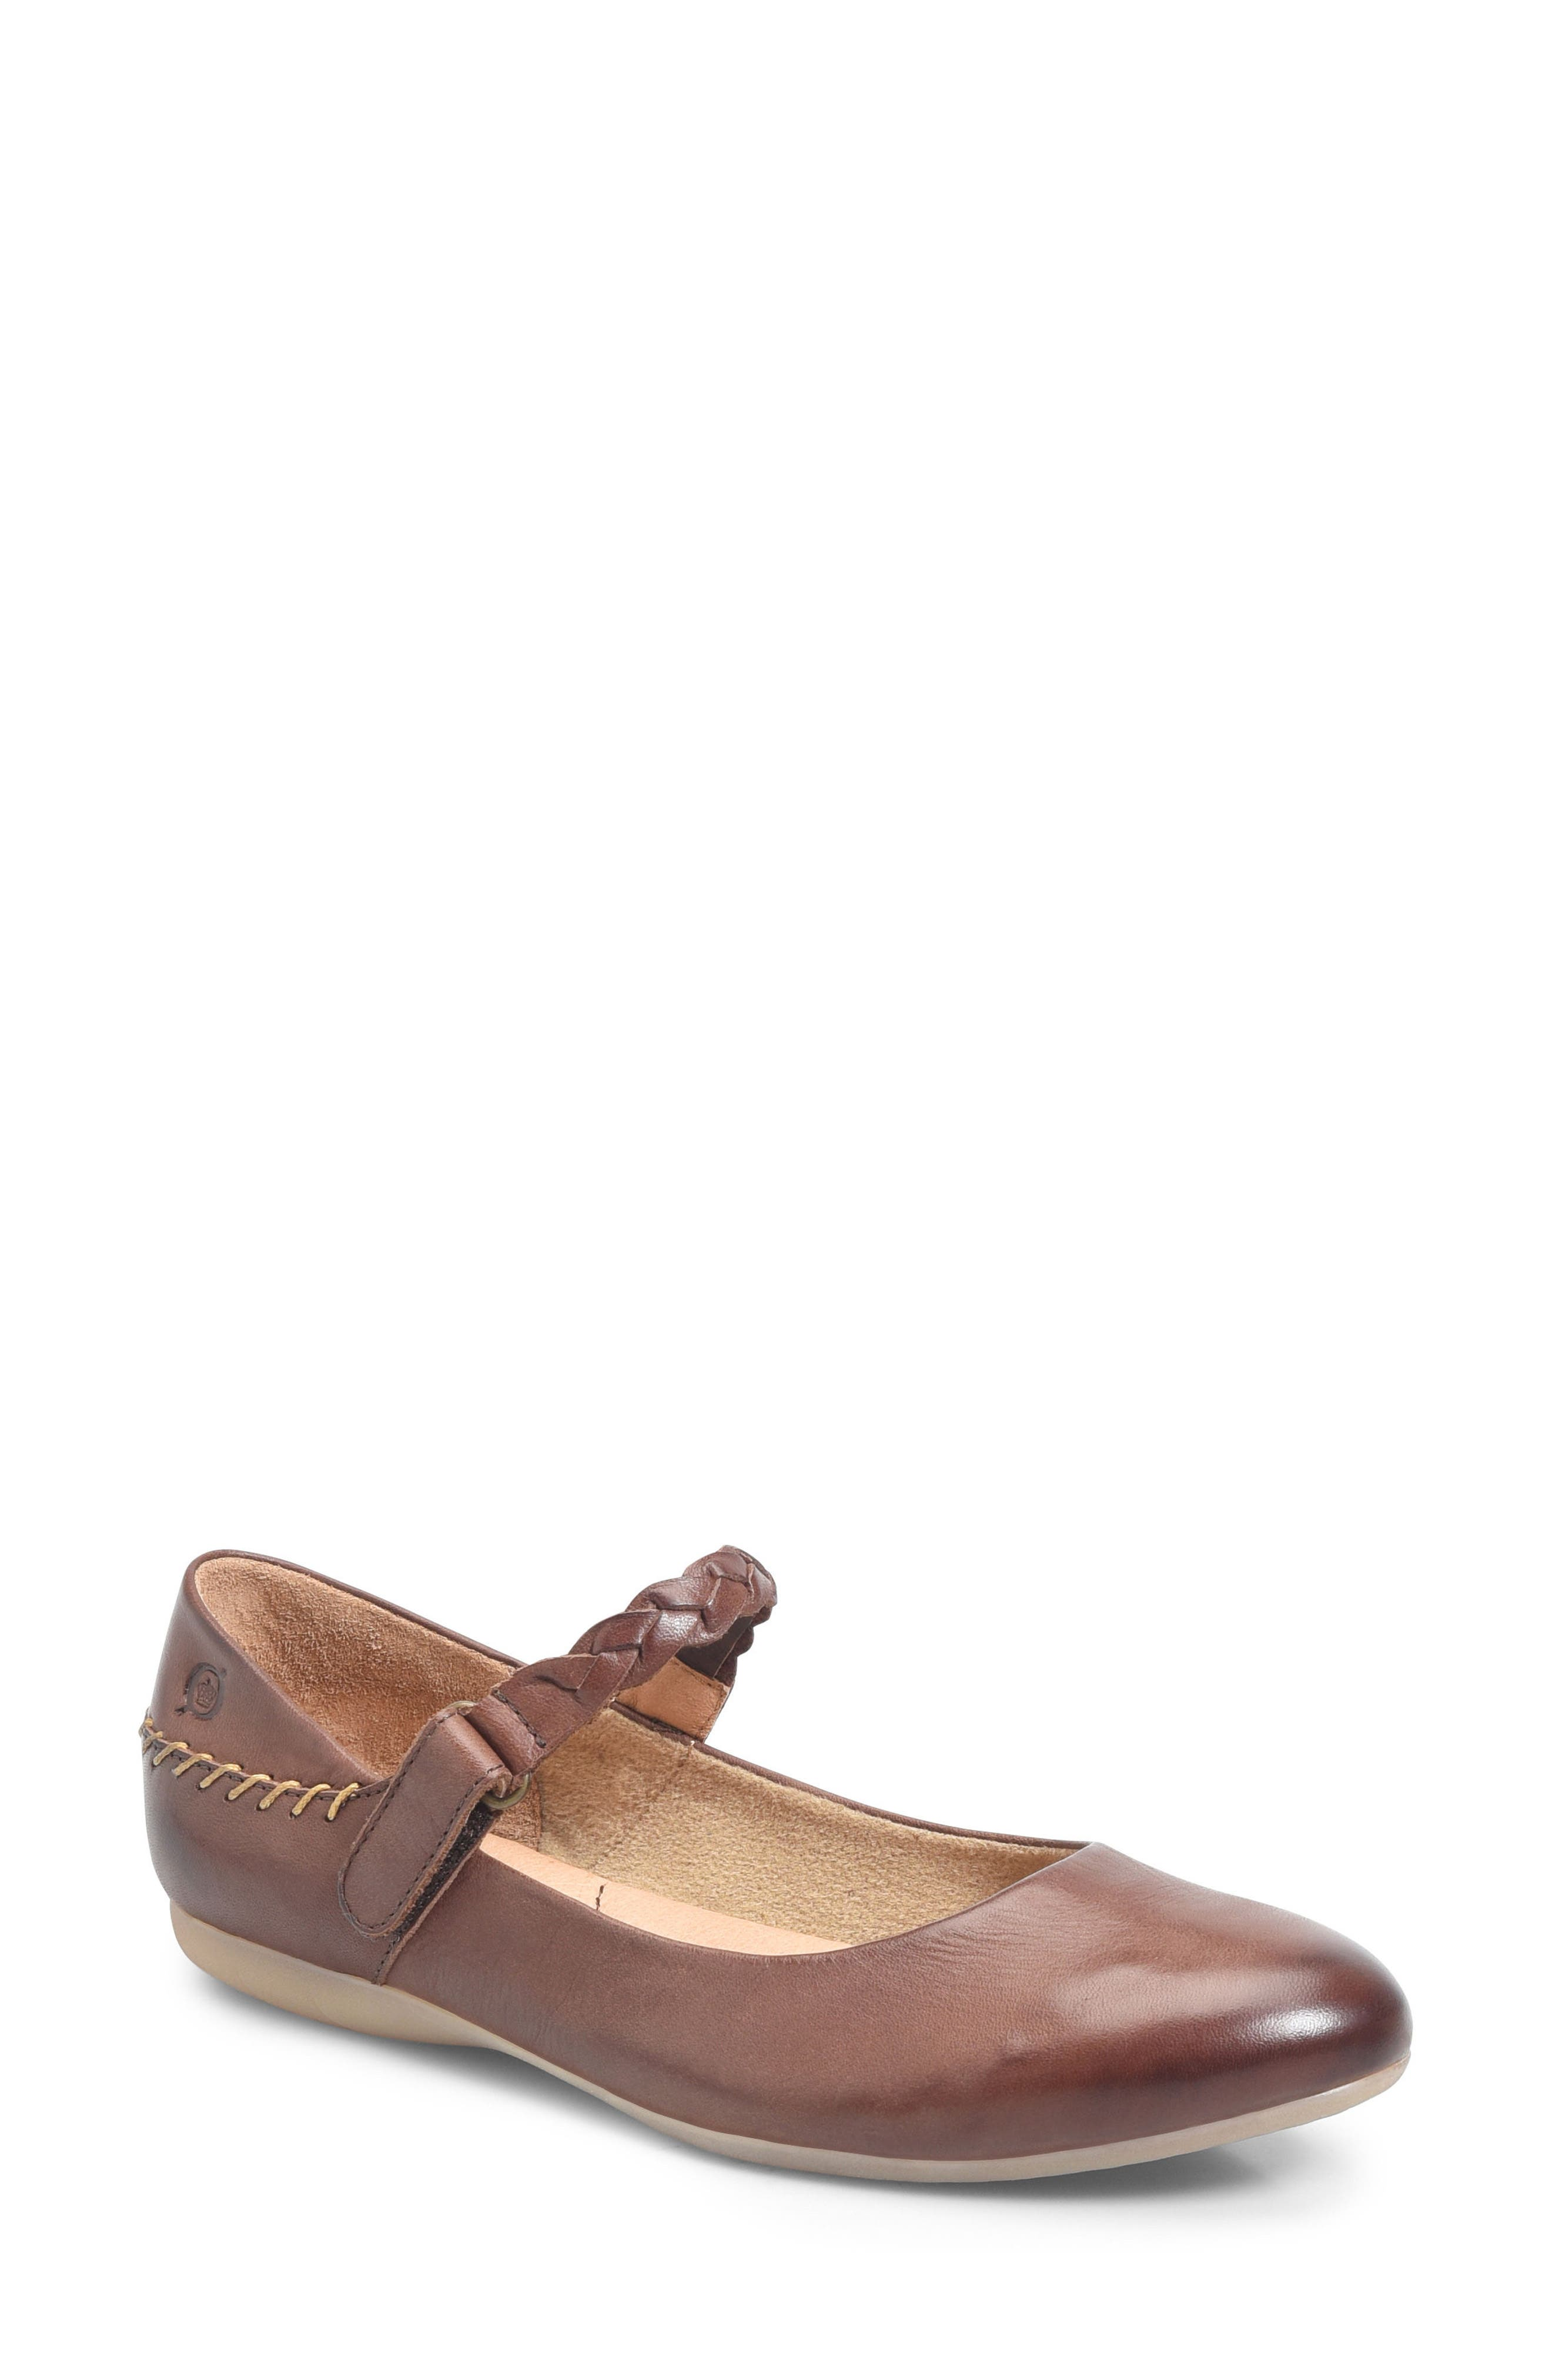 Mary Jane Flat,                         Main,                         color, Brown Leather